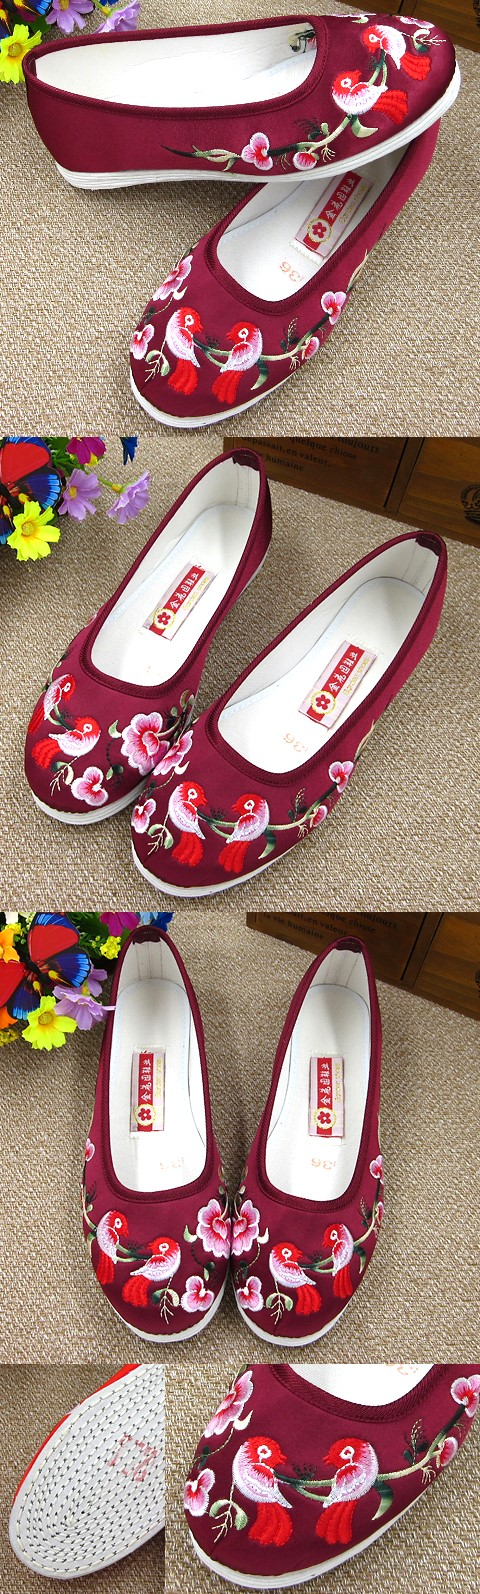 Satin Flower and Bird Embroidery Shoes (Violet Red)